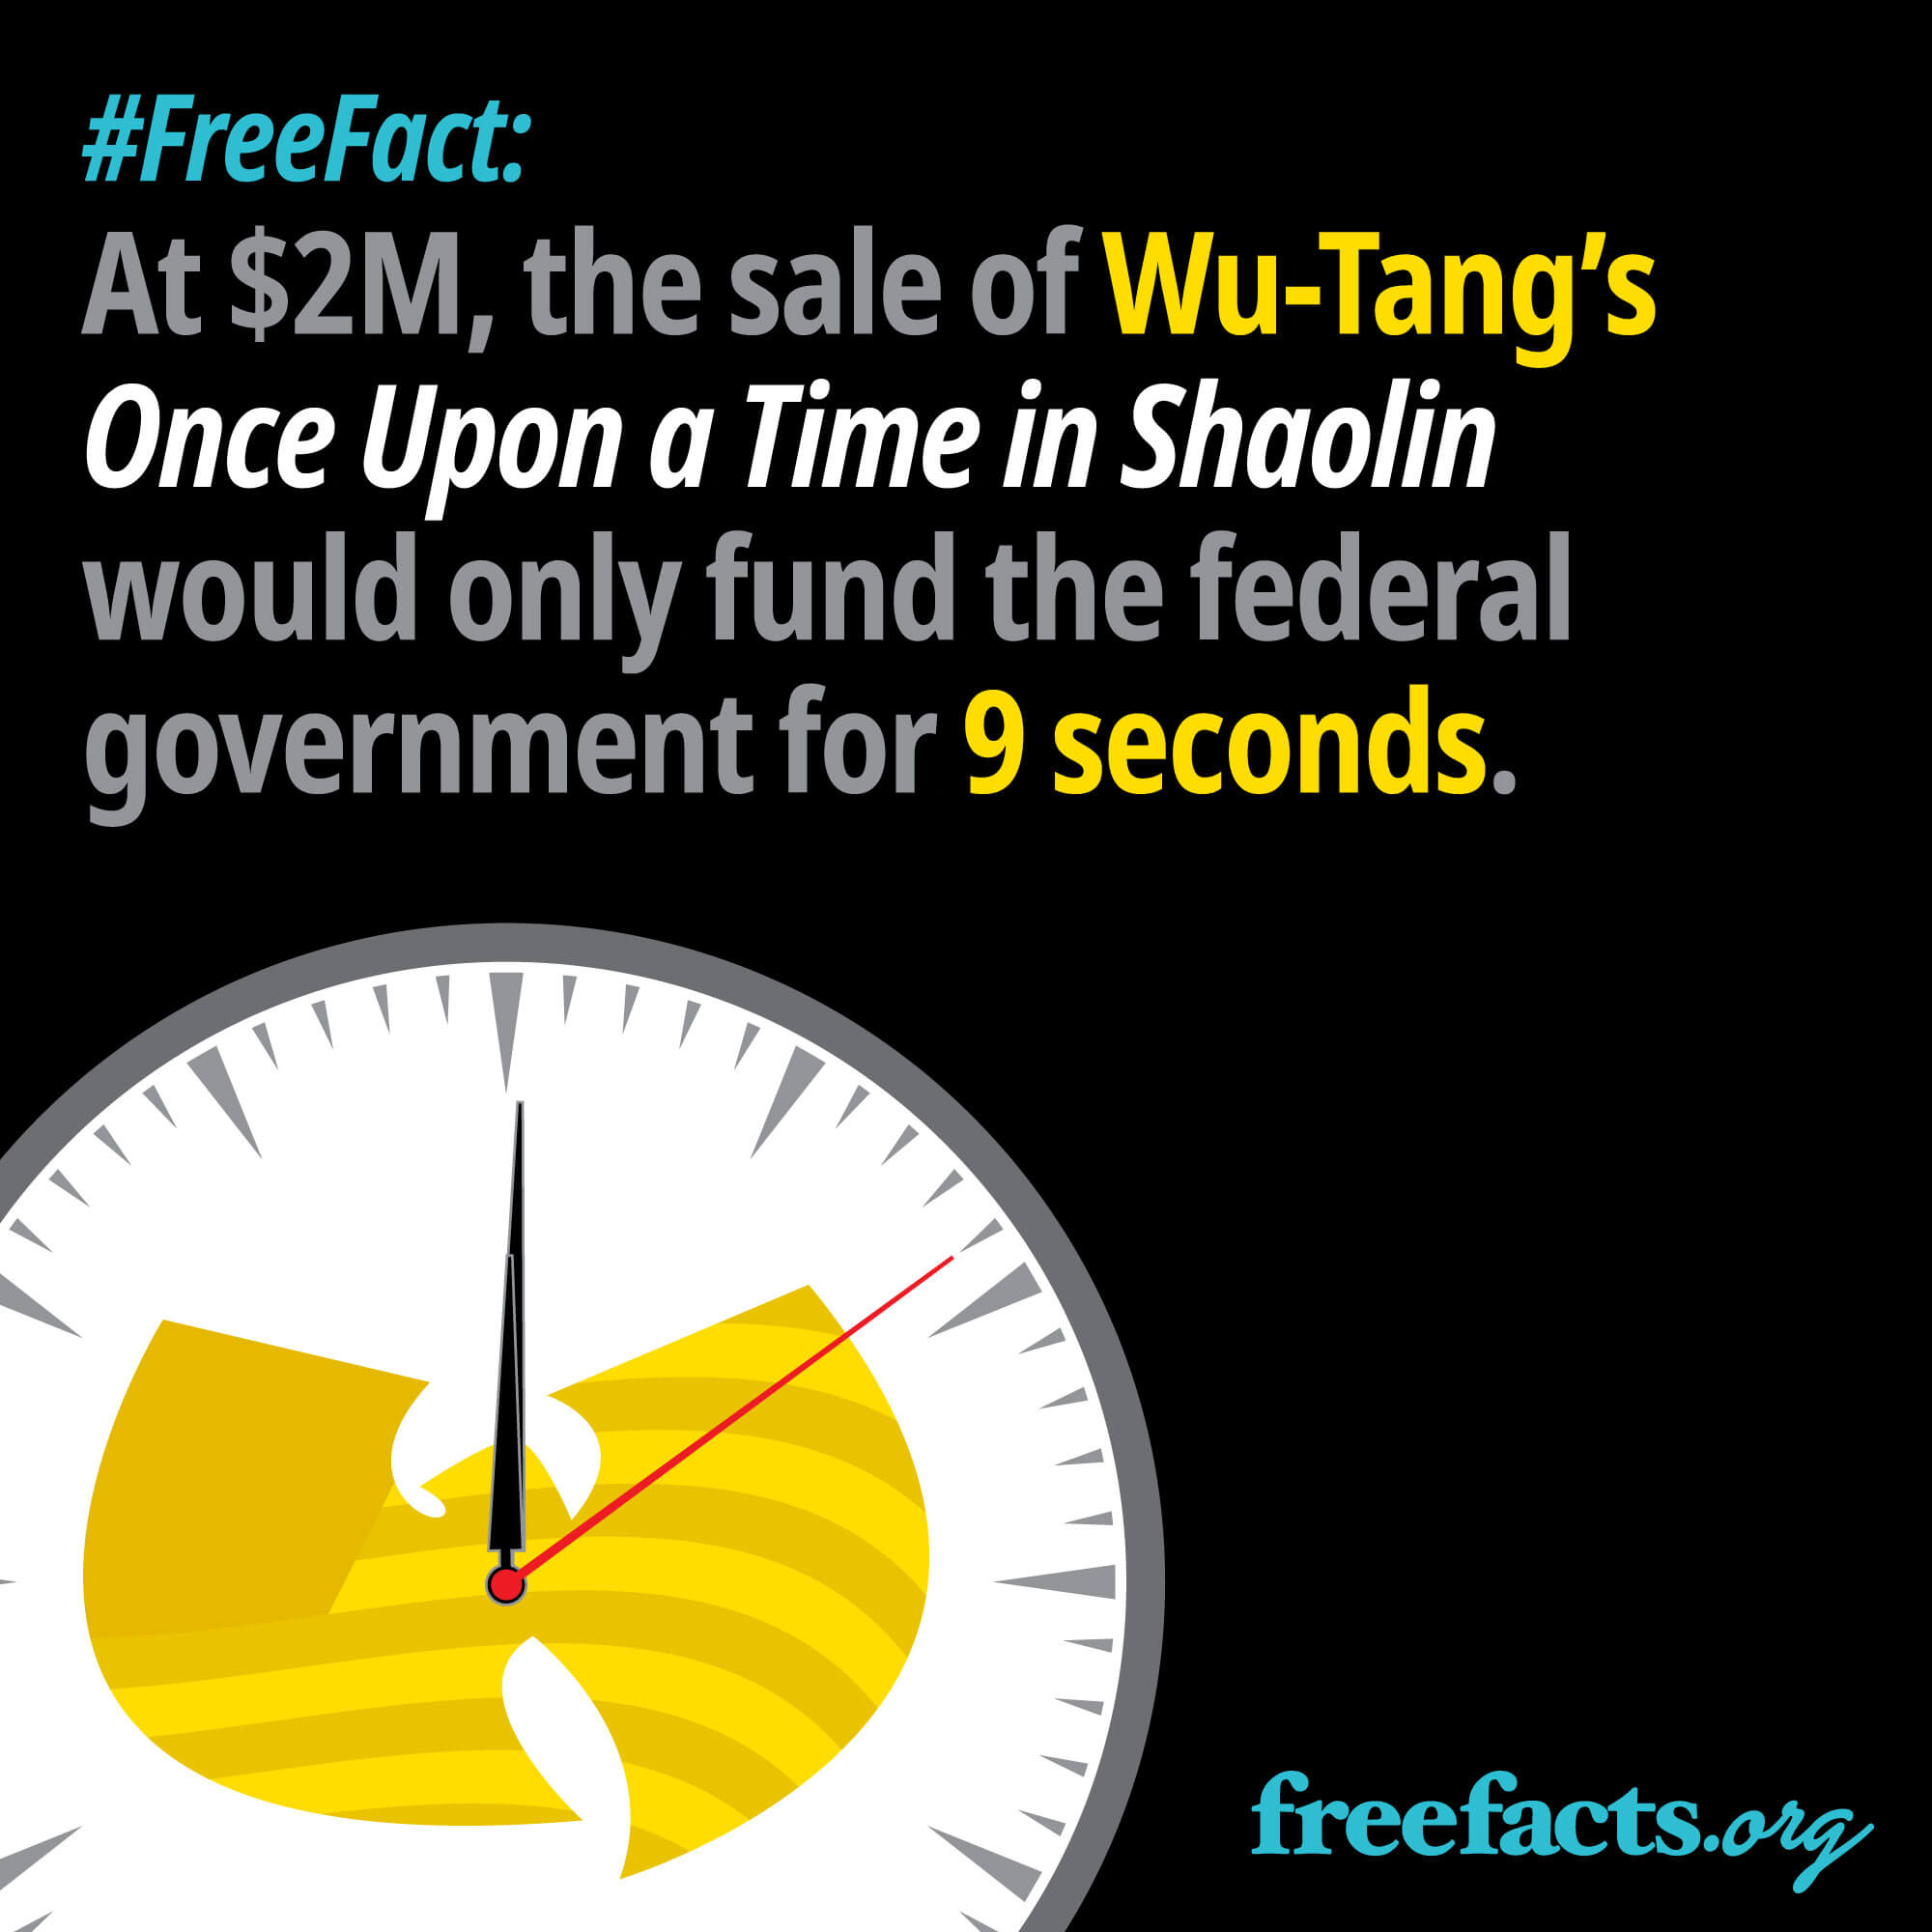 Wu-Tang and the Federal Budget